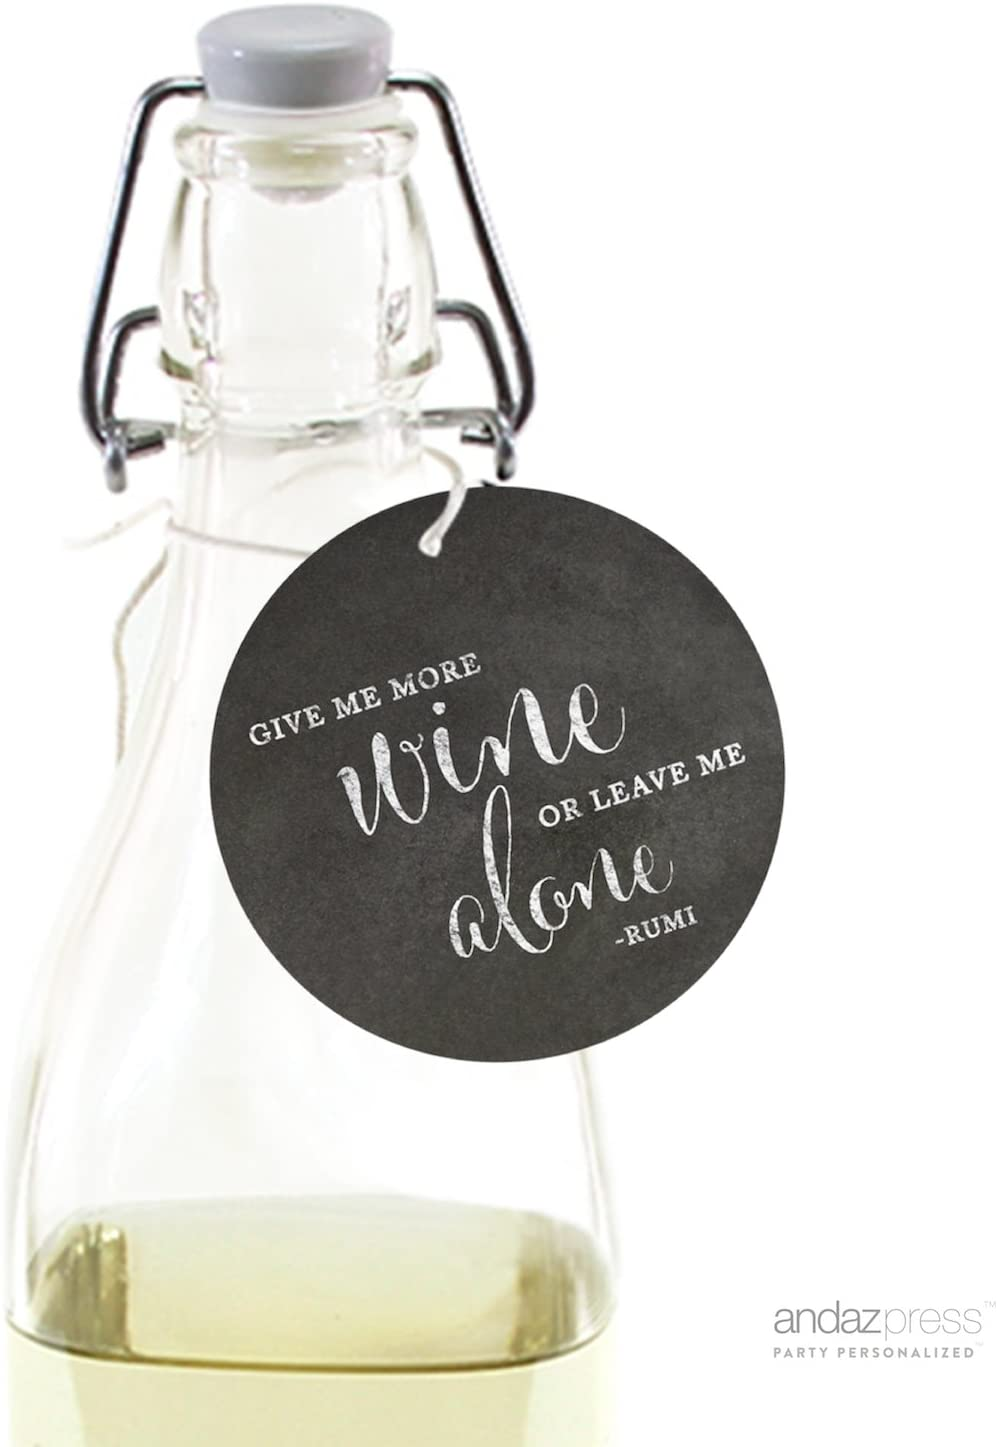 Andaz Press Wine Bottle Circle Gift Tags, Vintage Chalkboard Style, Either Give Me More Wine or Leave Me Alone, Rumi Quote, 24-Pack